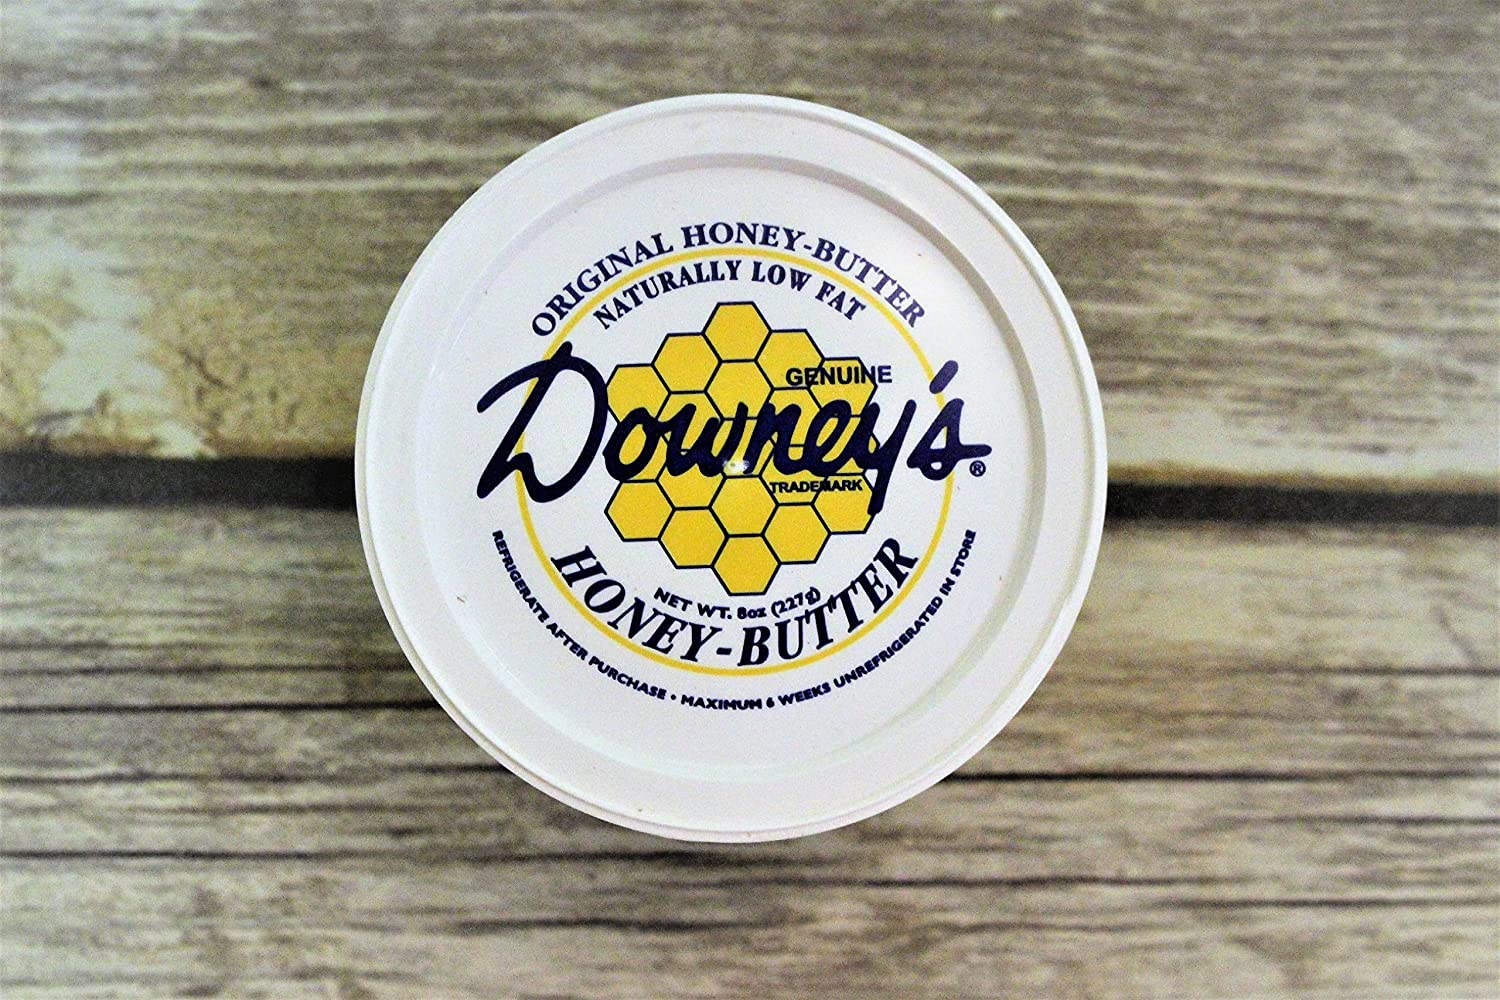 Downey Original Honey Butter, All-natural spread to use as a marinade, or an excellent topping on croissants, ice cream, muffins and baked goods. 8 oz container (Pack of 4)